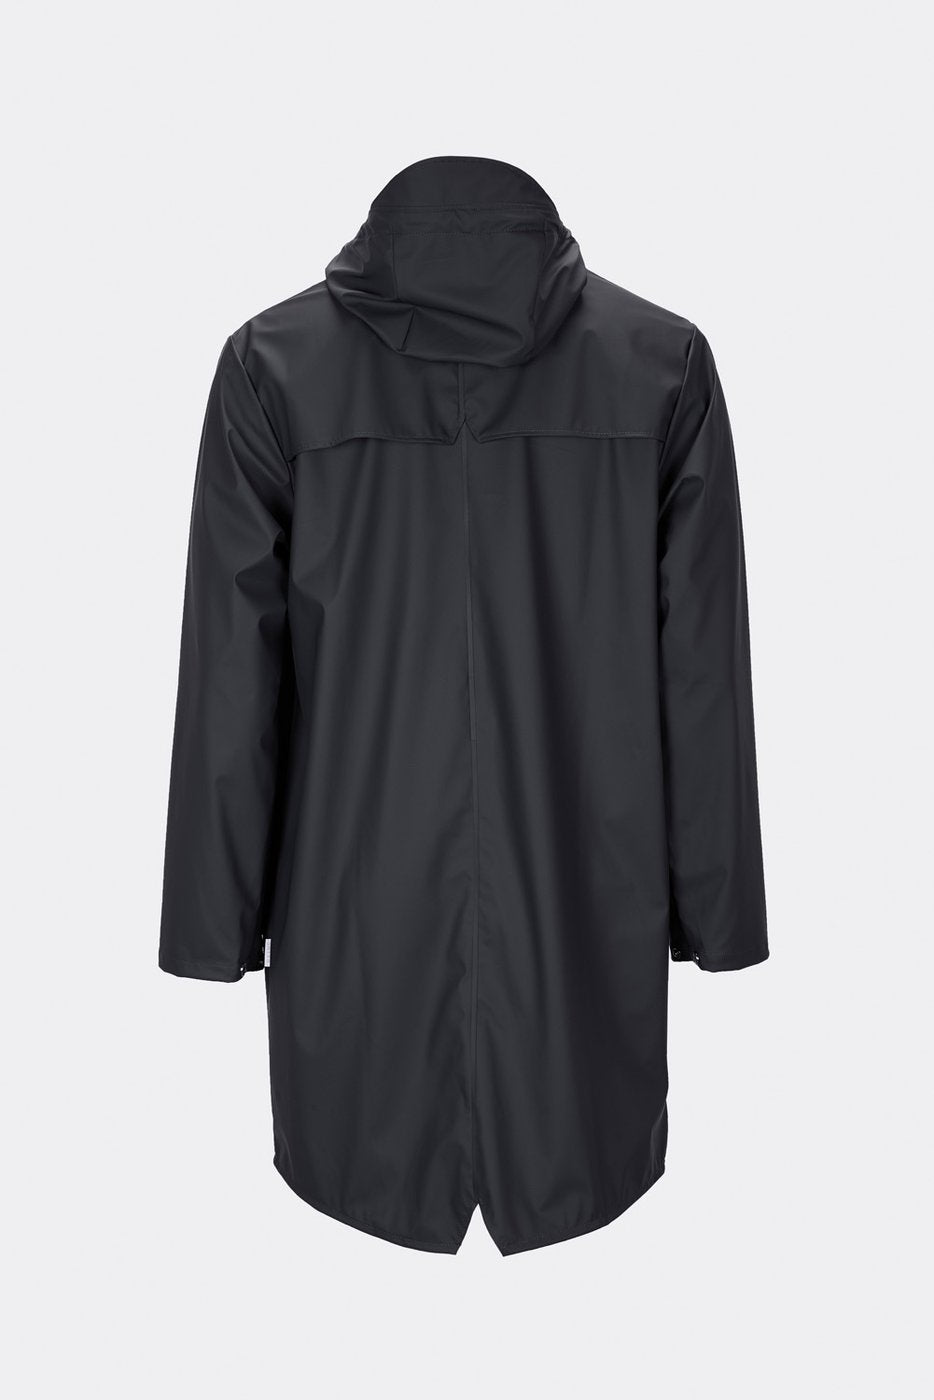 RAINS LONG JACKET (UNISEX)